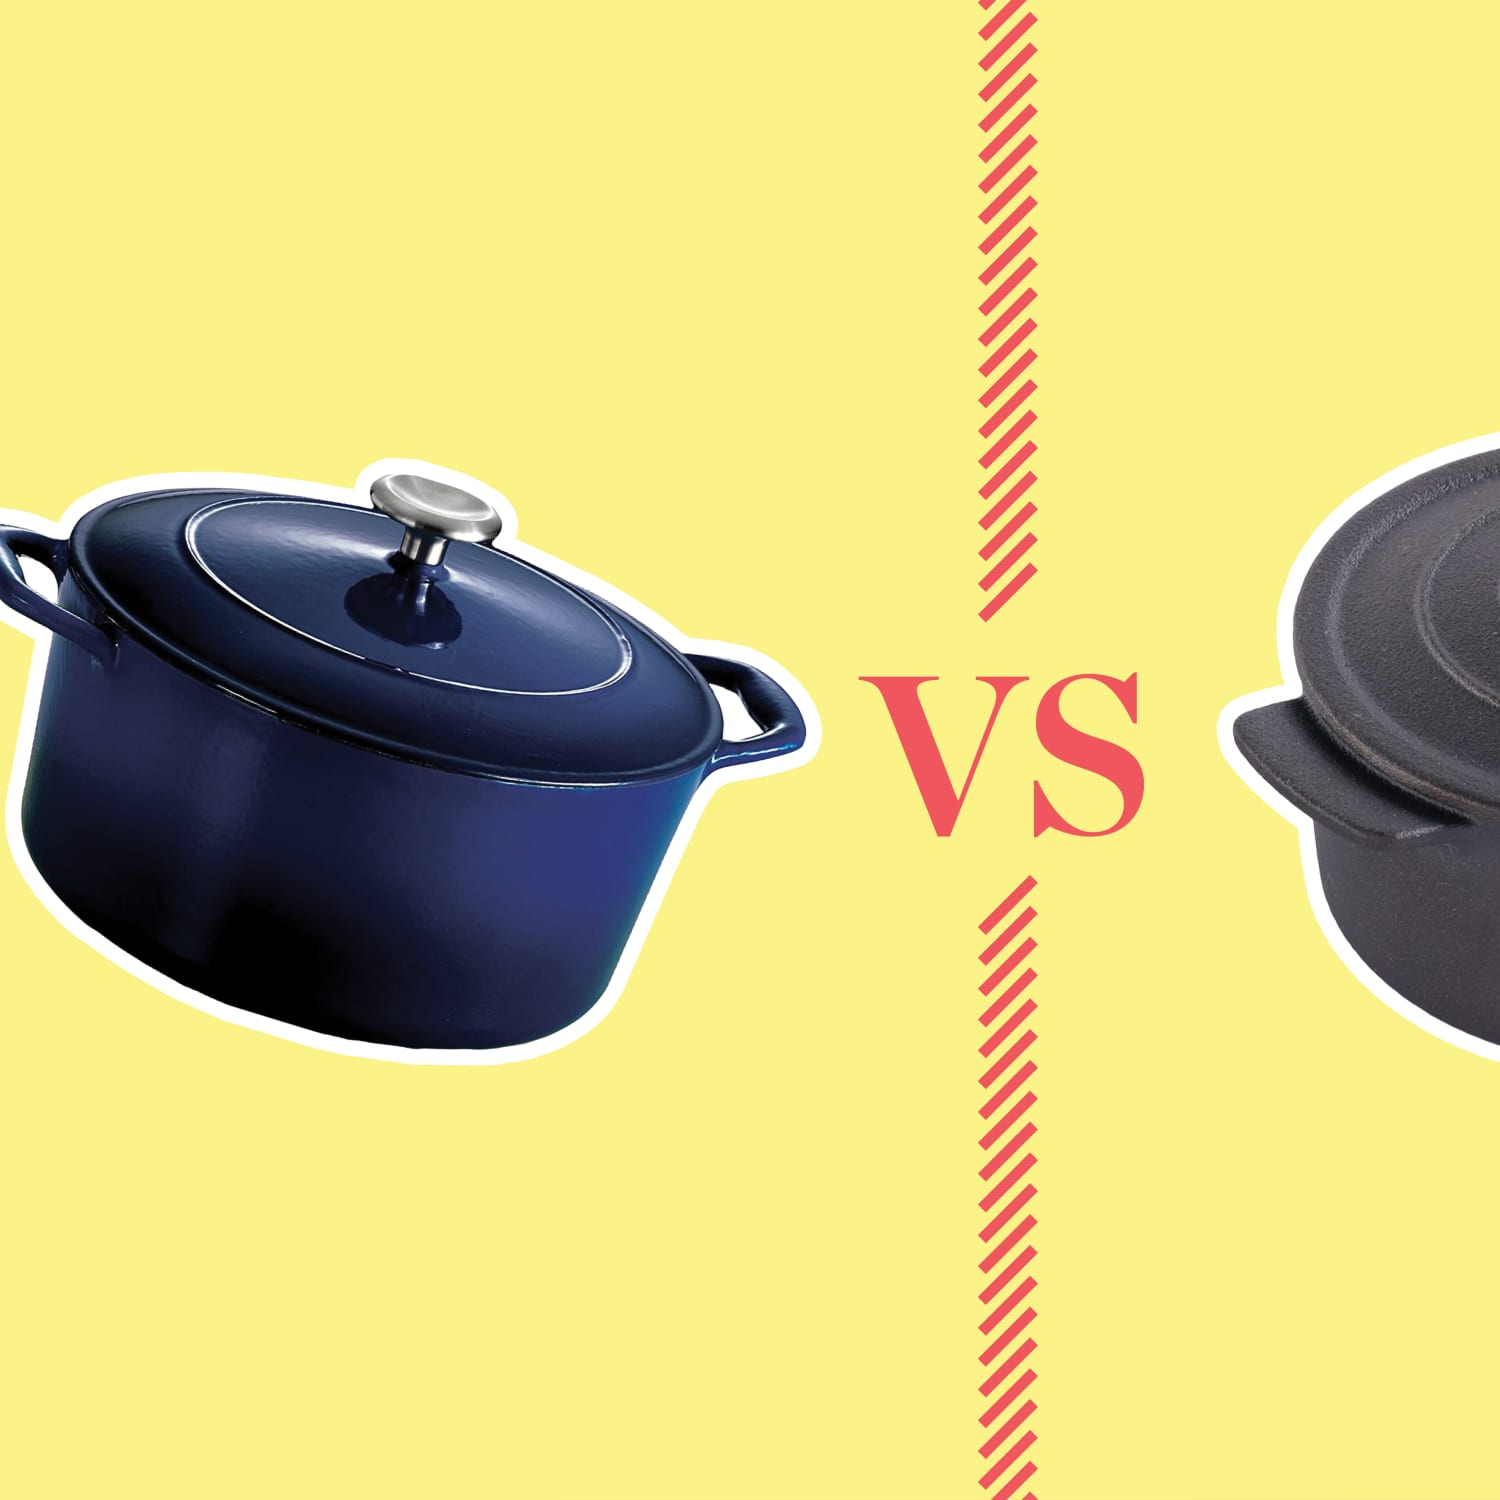 Cast Iron Versus Enameled Cast Iron Dutch Ovens | Kitchn